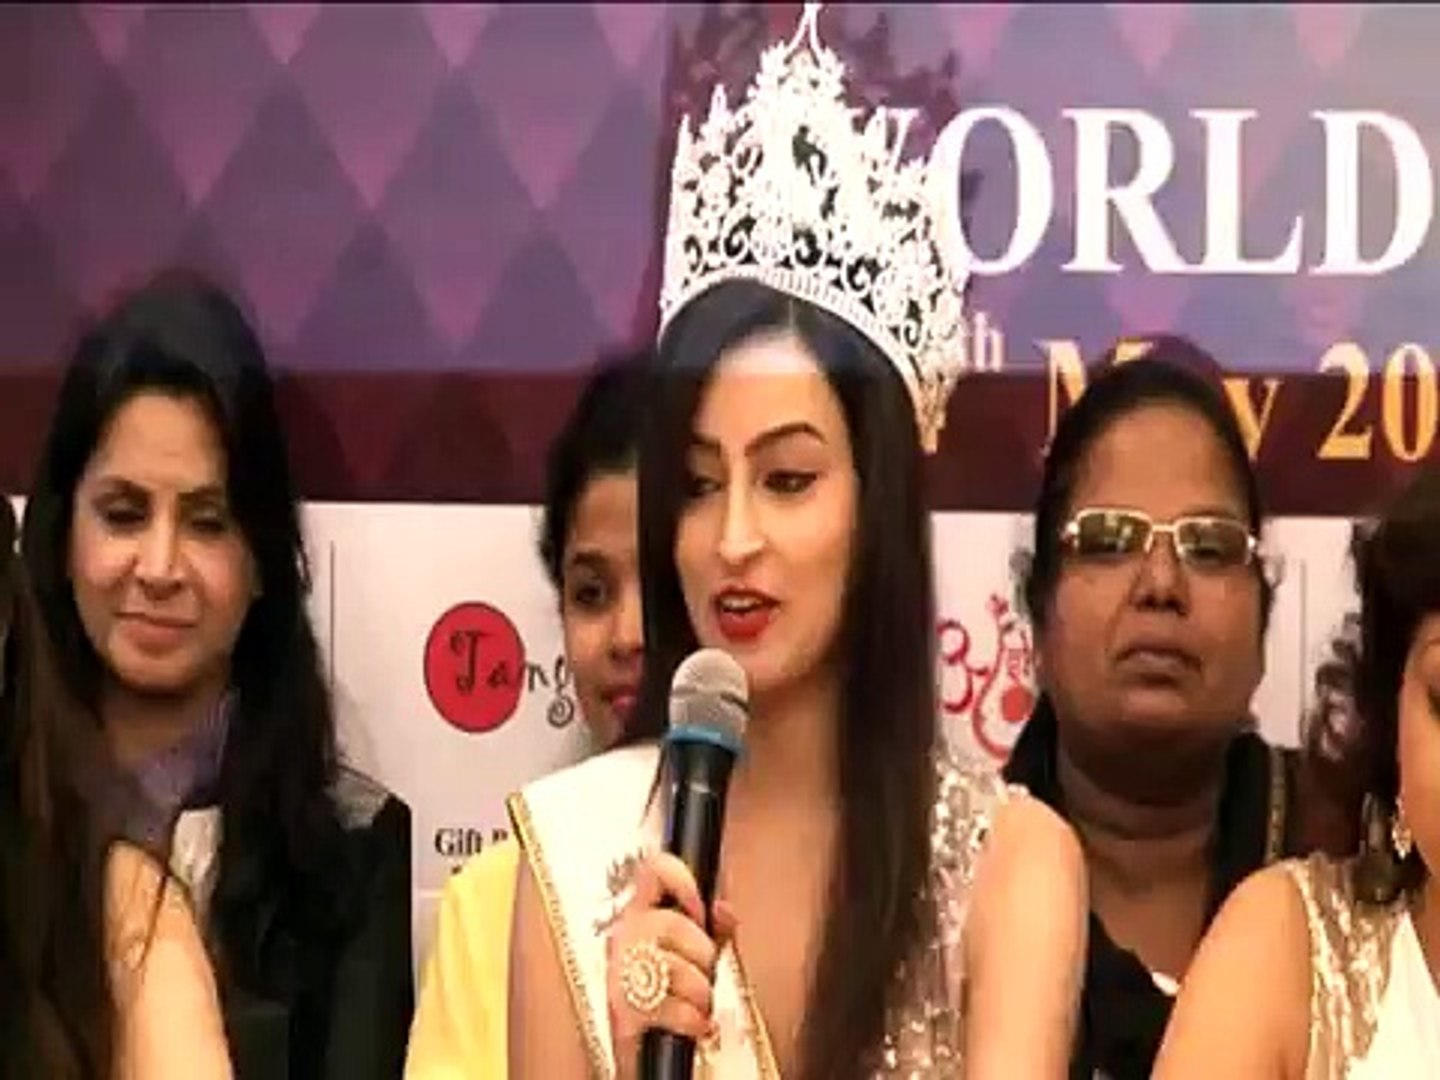 Indian Princess World Grand Finale 2015 Video _ New Bollywood Movies News 2015-OKL70ULDR1U